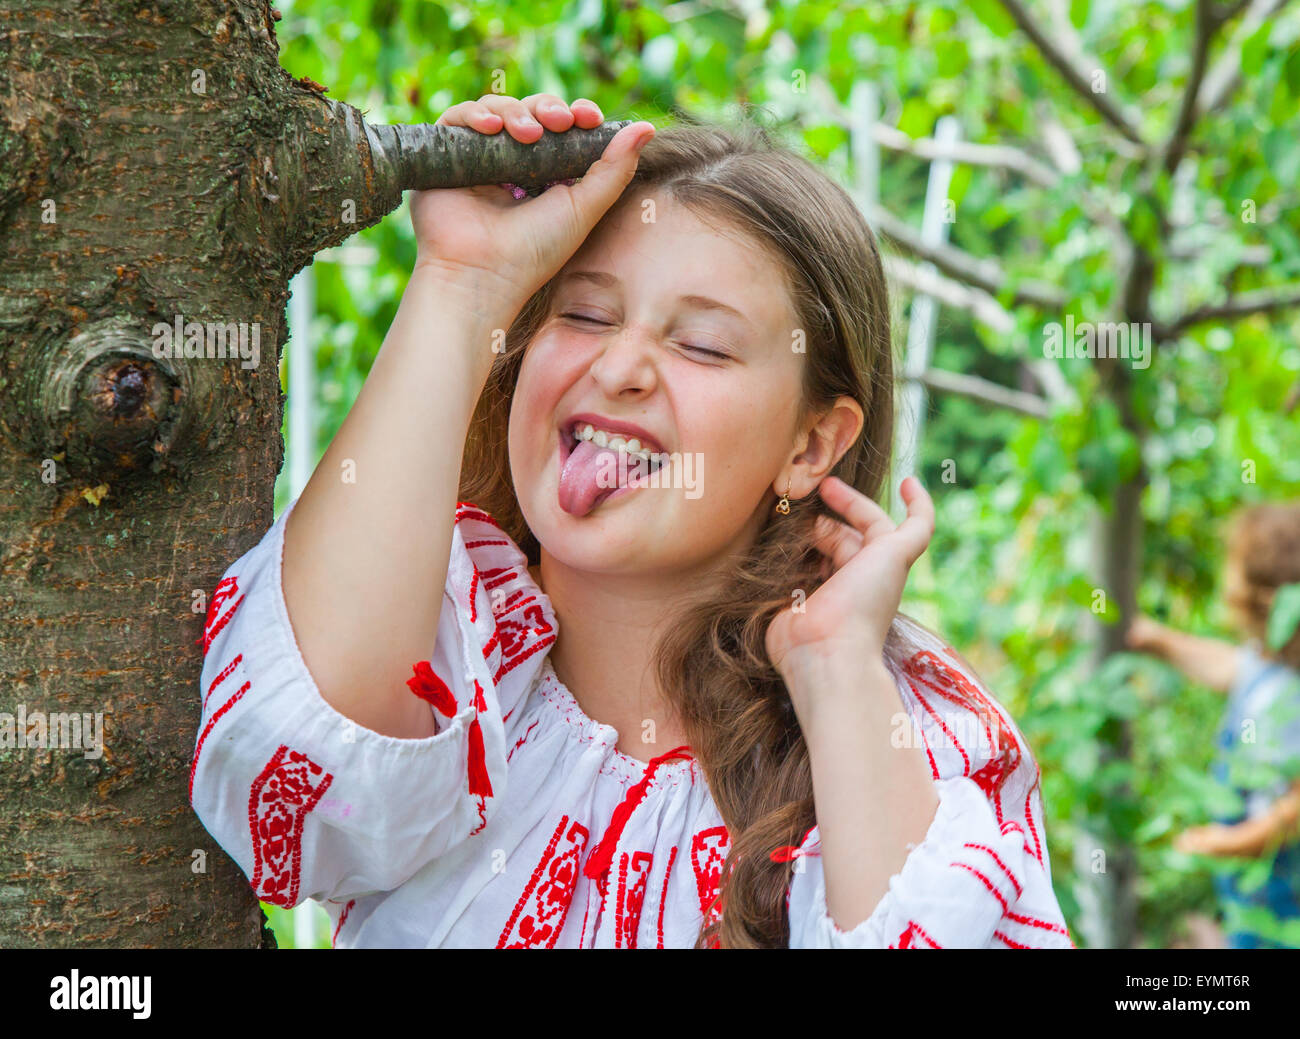 Pretty 10 Year Old Caucasian Stock Photos & Pretty 10 Year Old ...